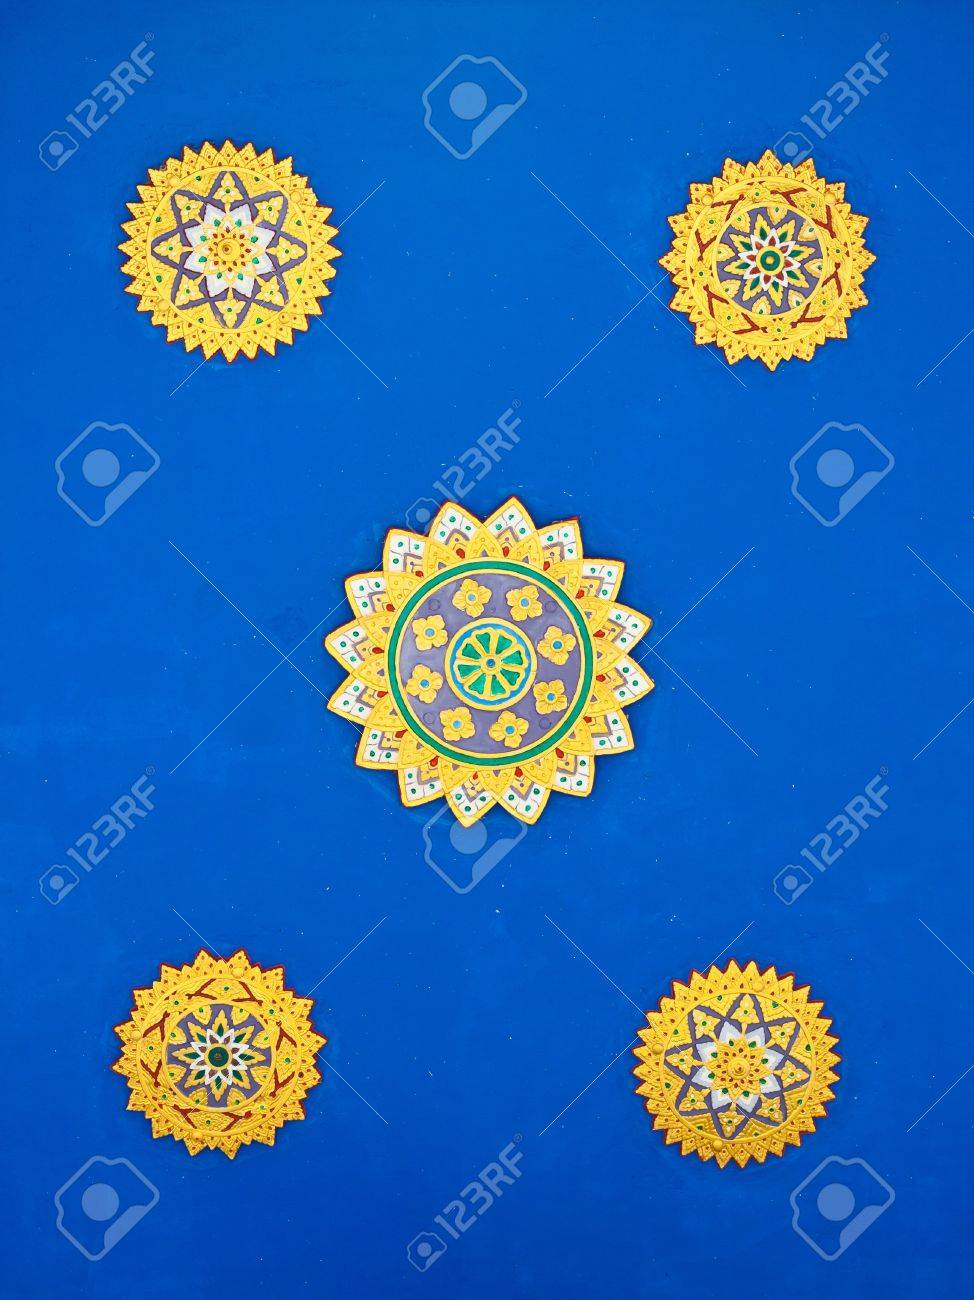 Golden on green thai painting wallpaper, Buddha temple wall and ceiling decoration Stock Photo - 10761776